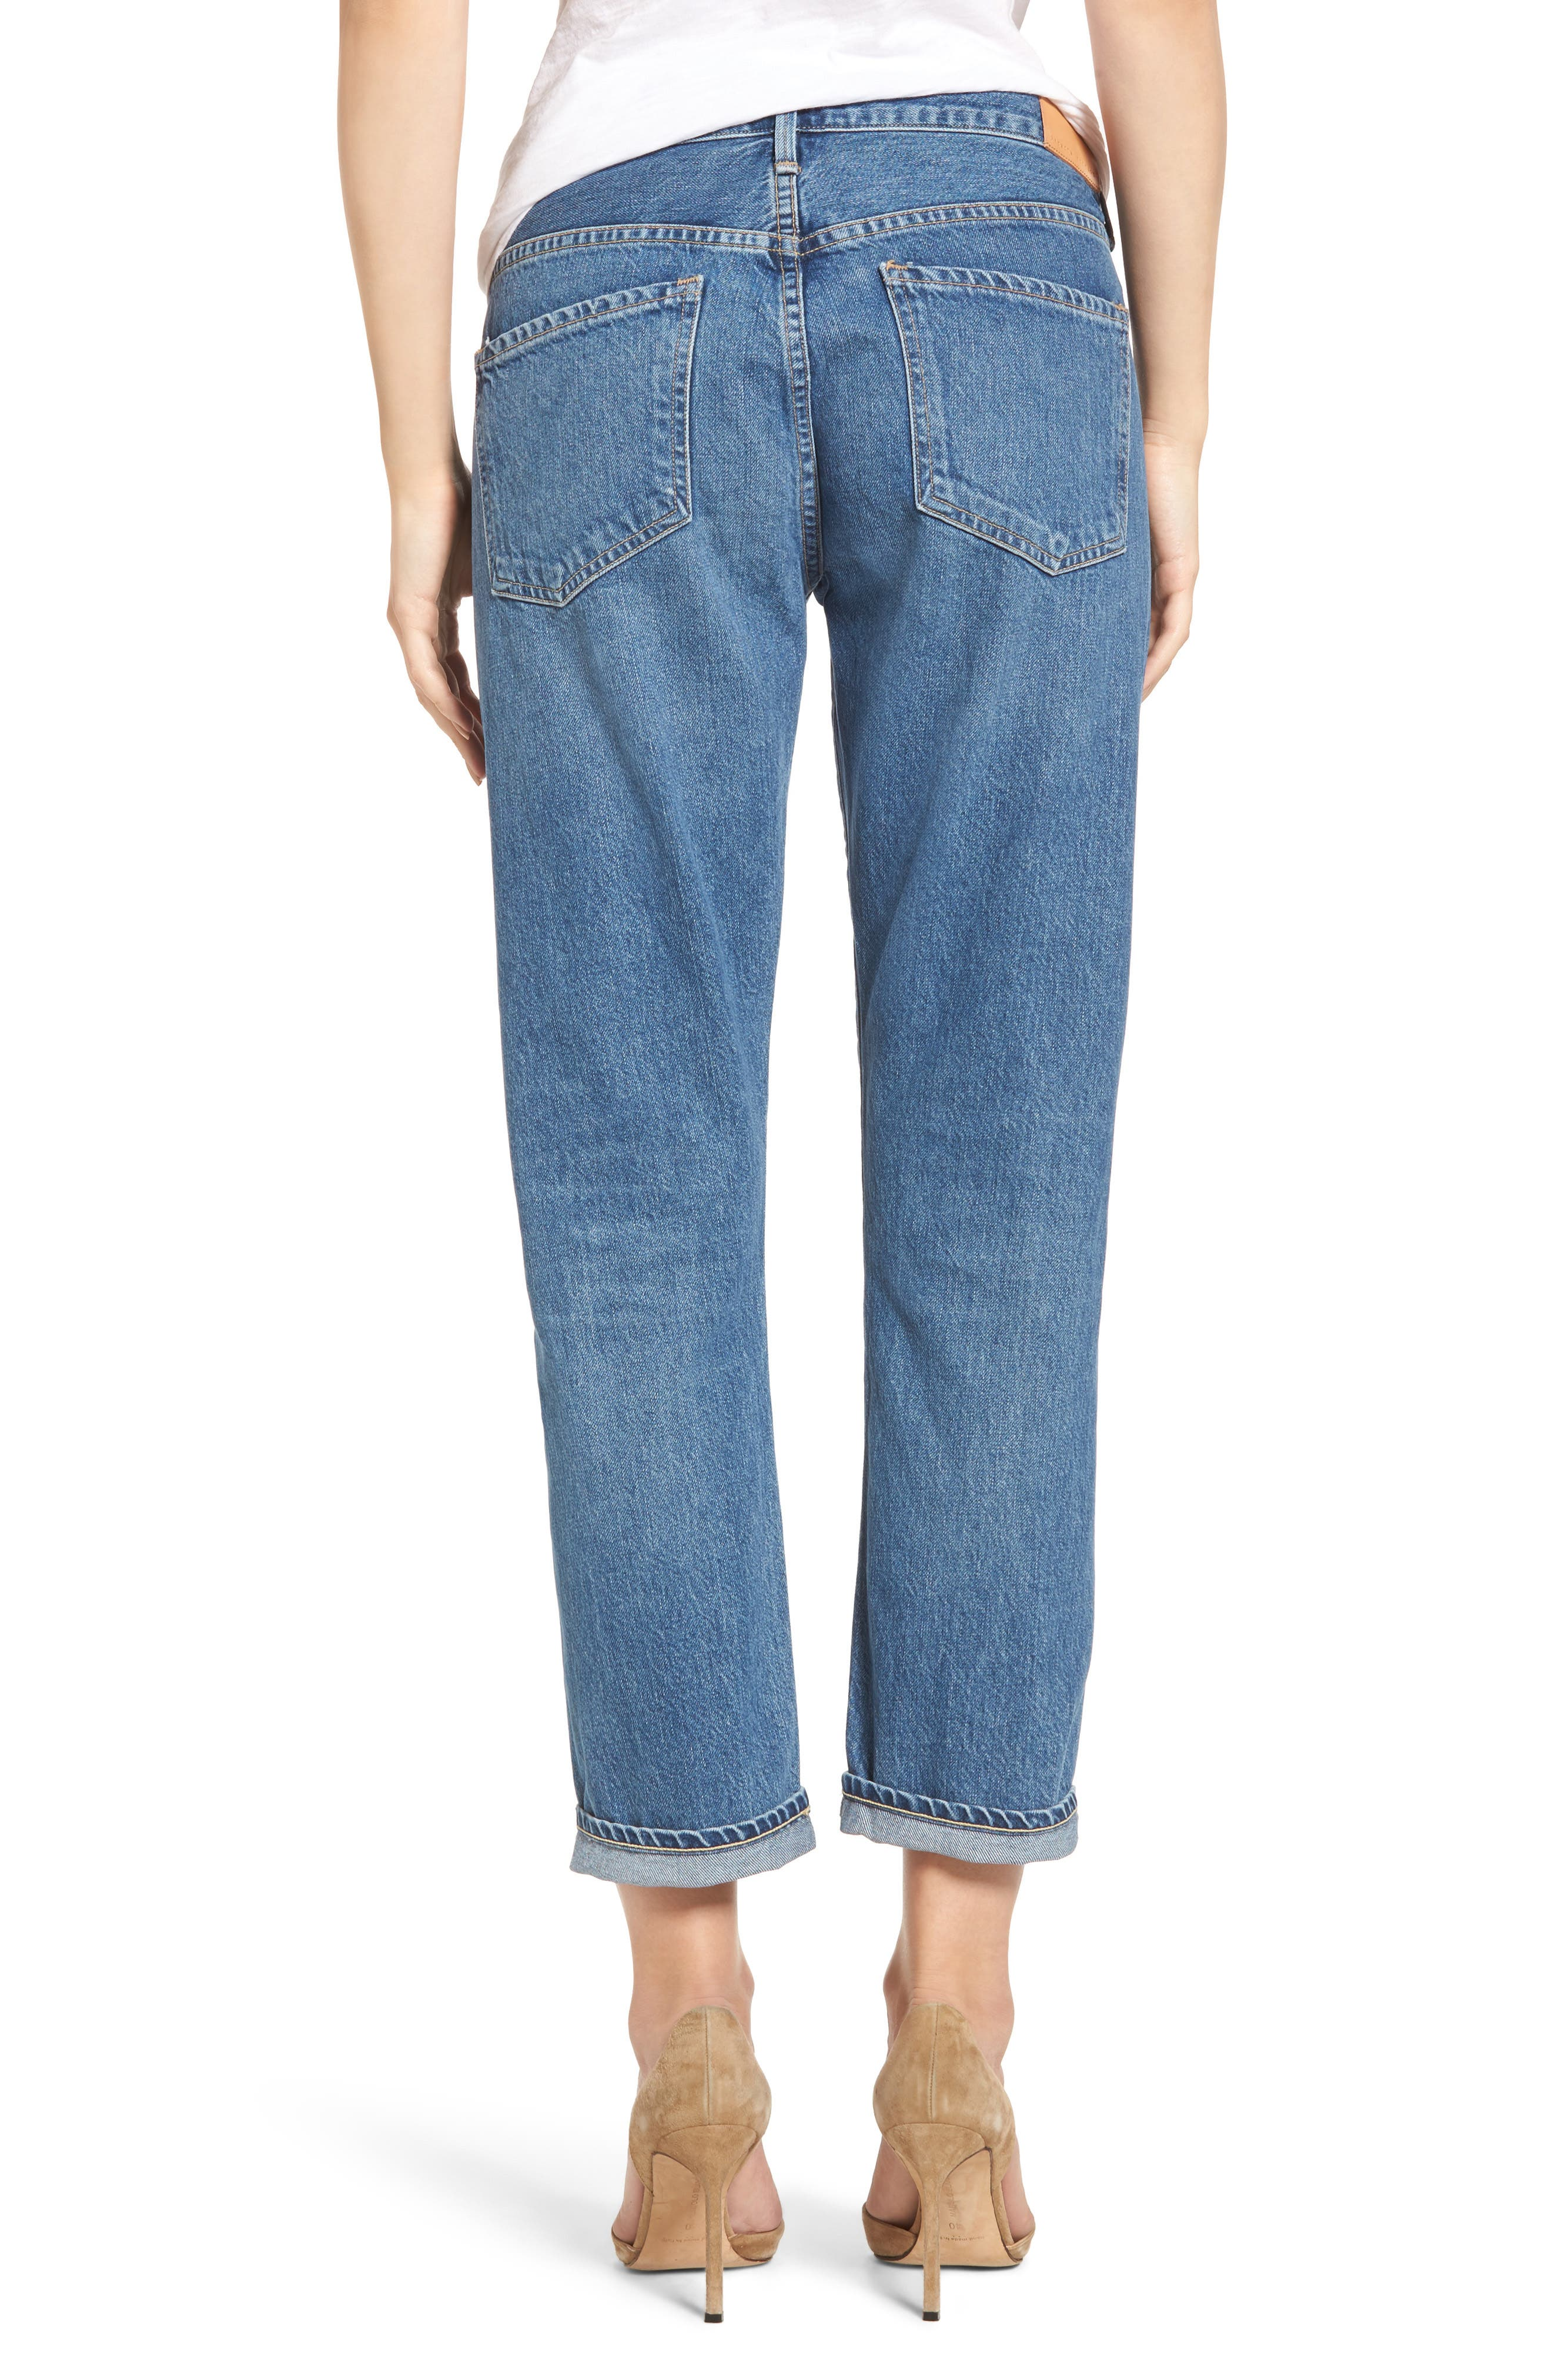 Emerson Slim Boyfriend Jeans,                             Alternate thumbnail 2, color,                             Admire